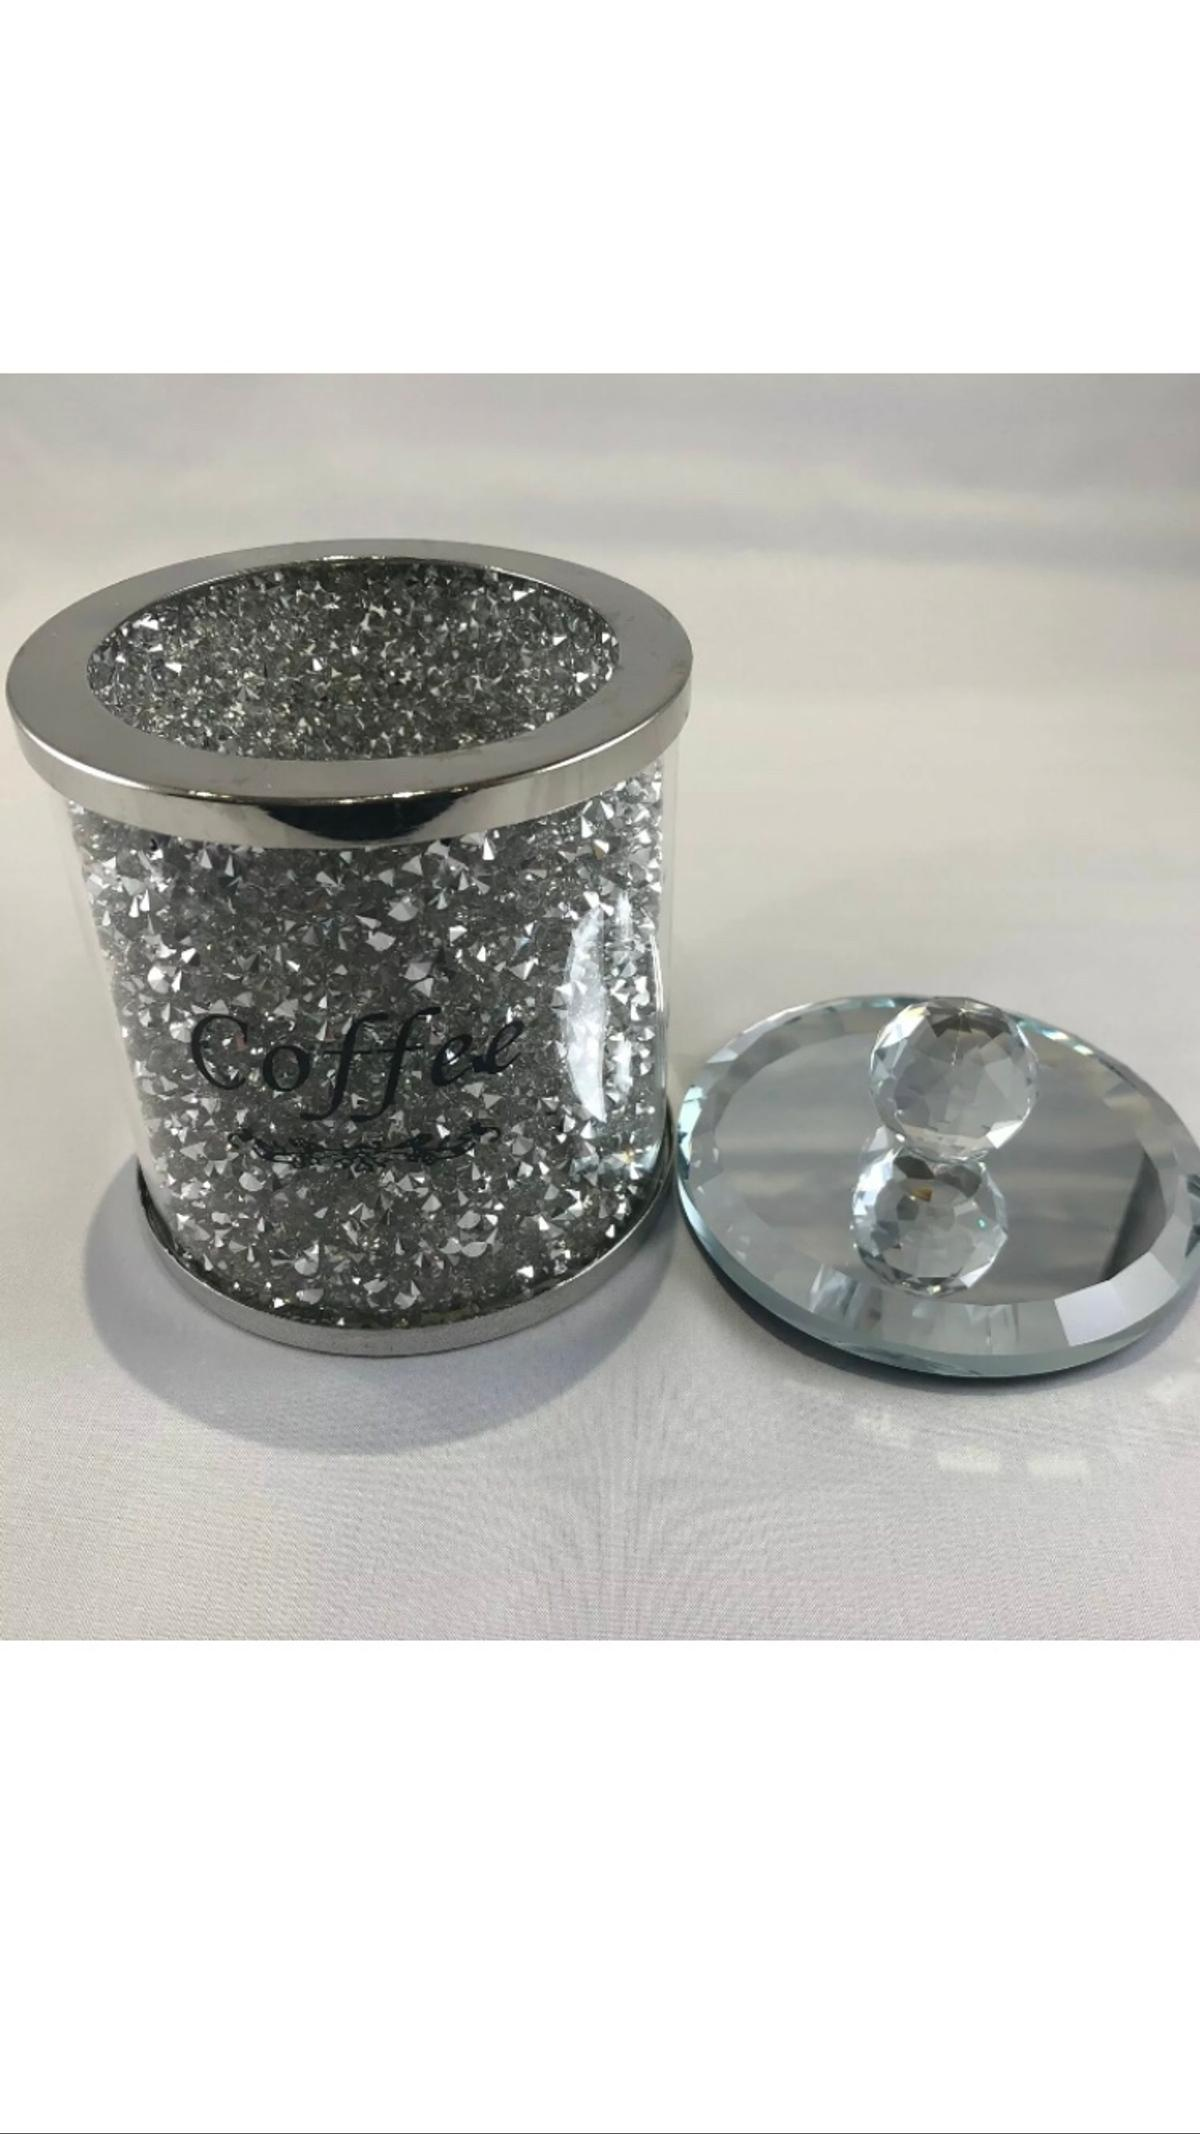 DIAMOND CRUSHED SILVER CRYSTAL FILLED TEA COFFEE SUGAR CANISTERS JARS STORAGE PLEASE SEE MY OTHER STUFF